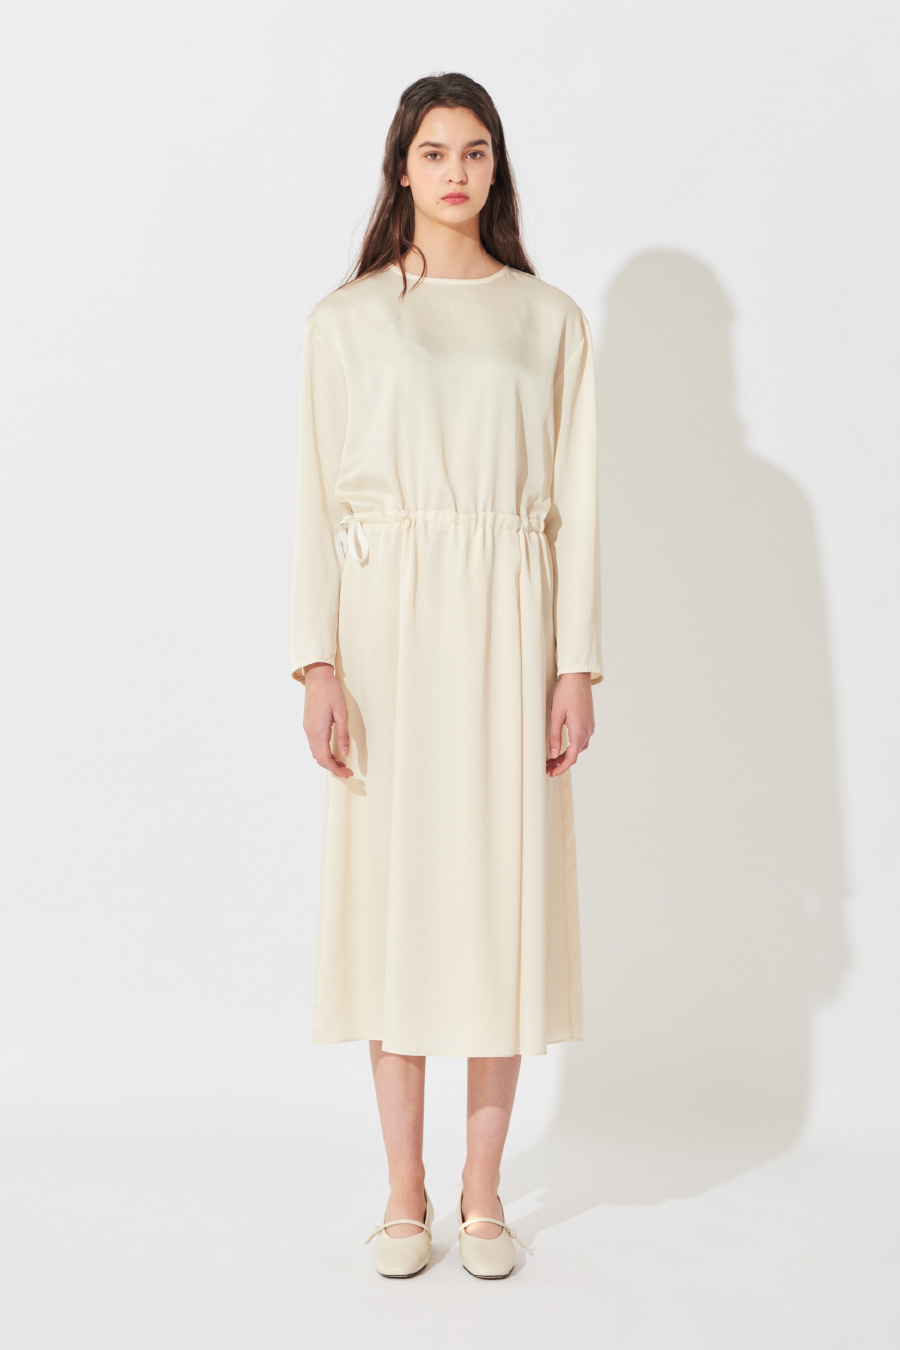 유라고 URAGO Shatin Plain Dress